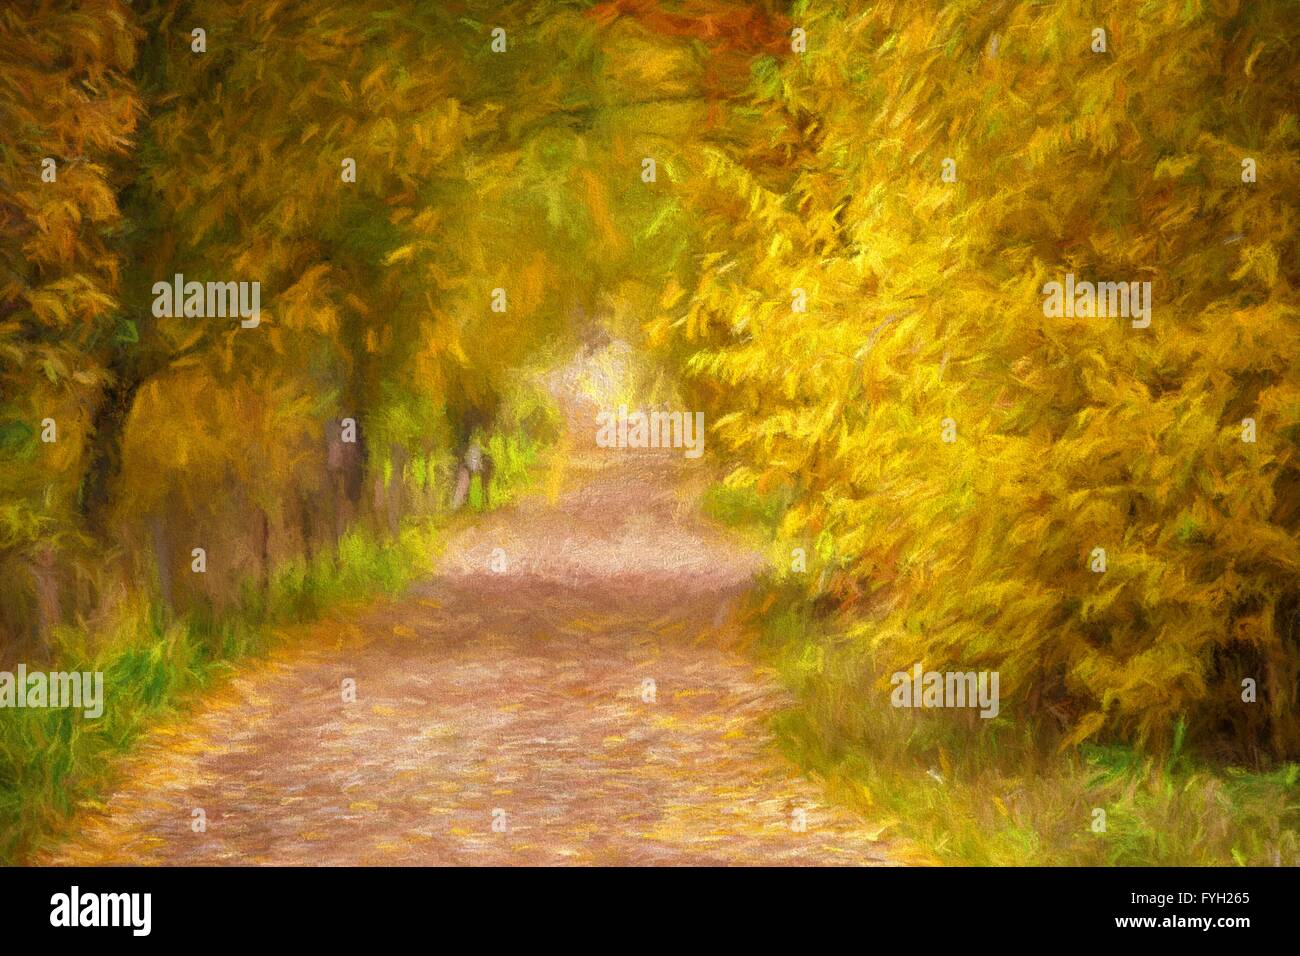 Oil Painting Autumn Landscape Path Lined With Trees With